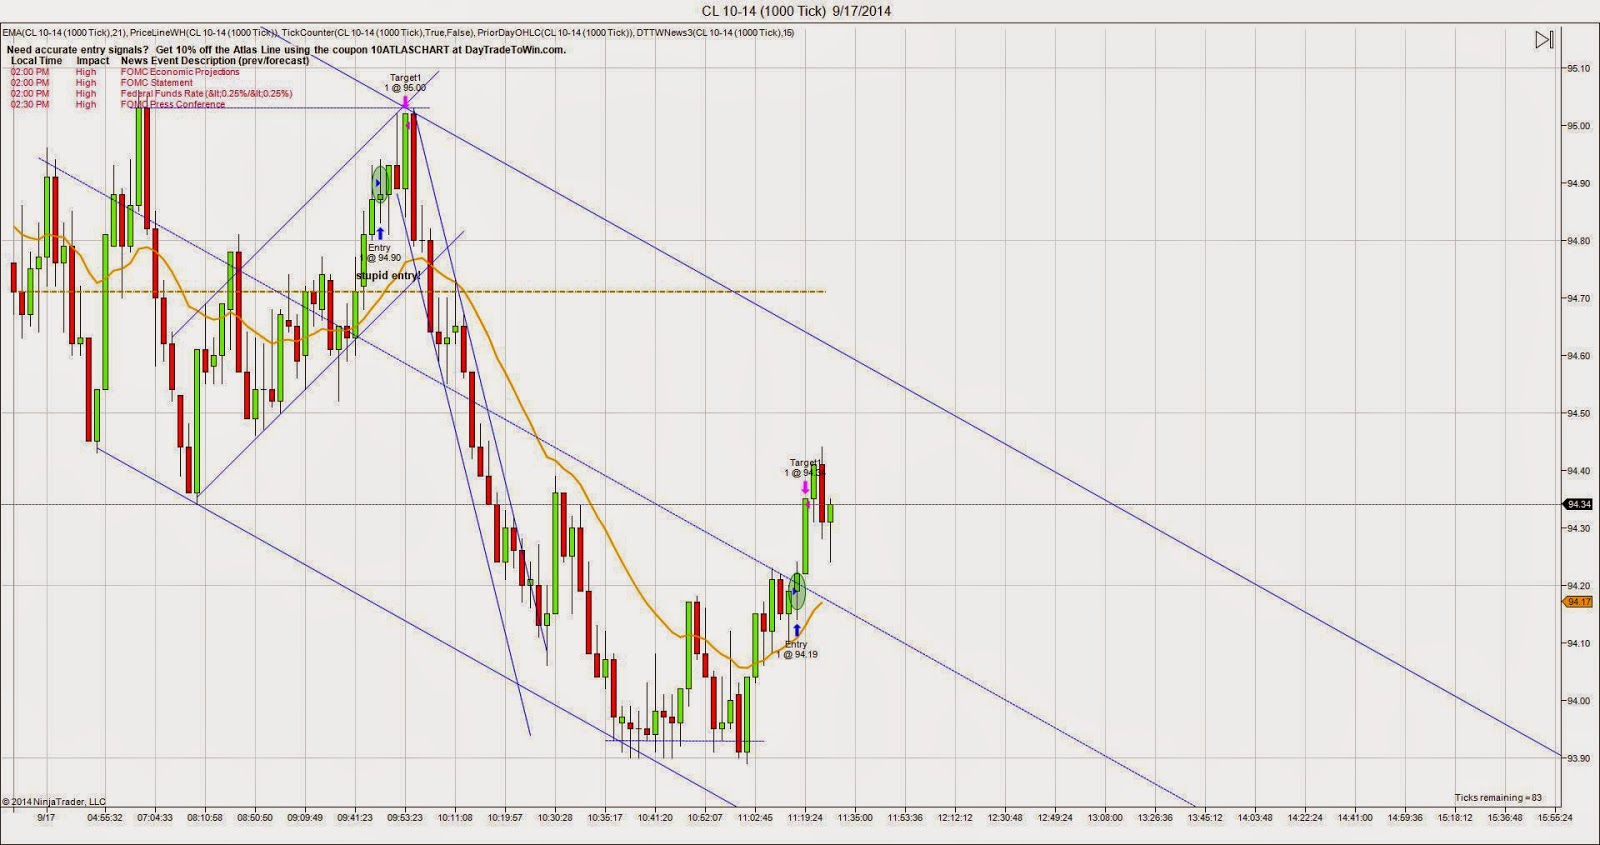 Crude Oil Futures chart for Wednesday 9/17/14